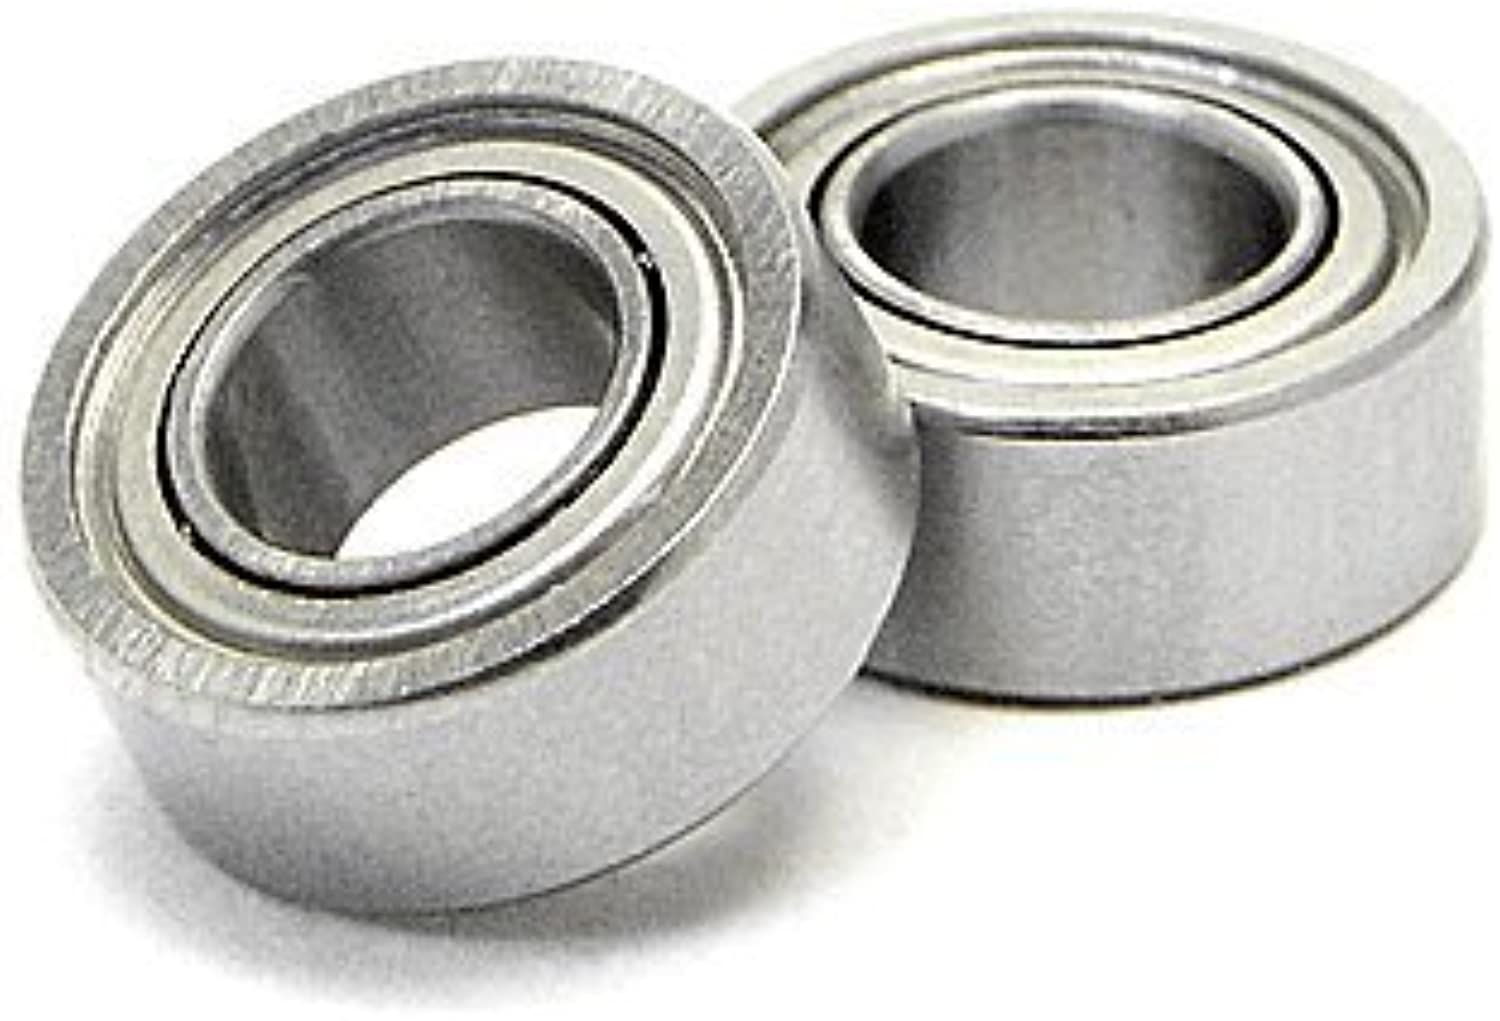 HPI Racing RC Car Ball Bearing 5x10mm Ball Bearing 2pcs by Hpi Racing